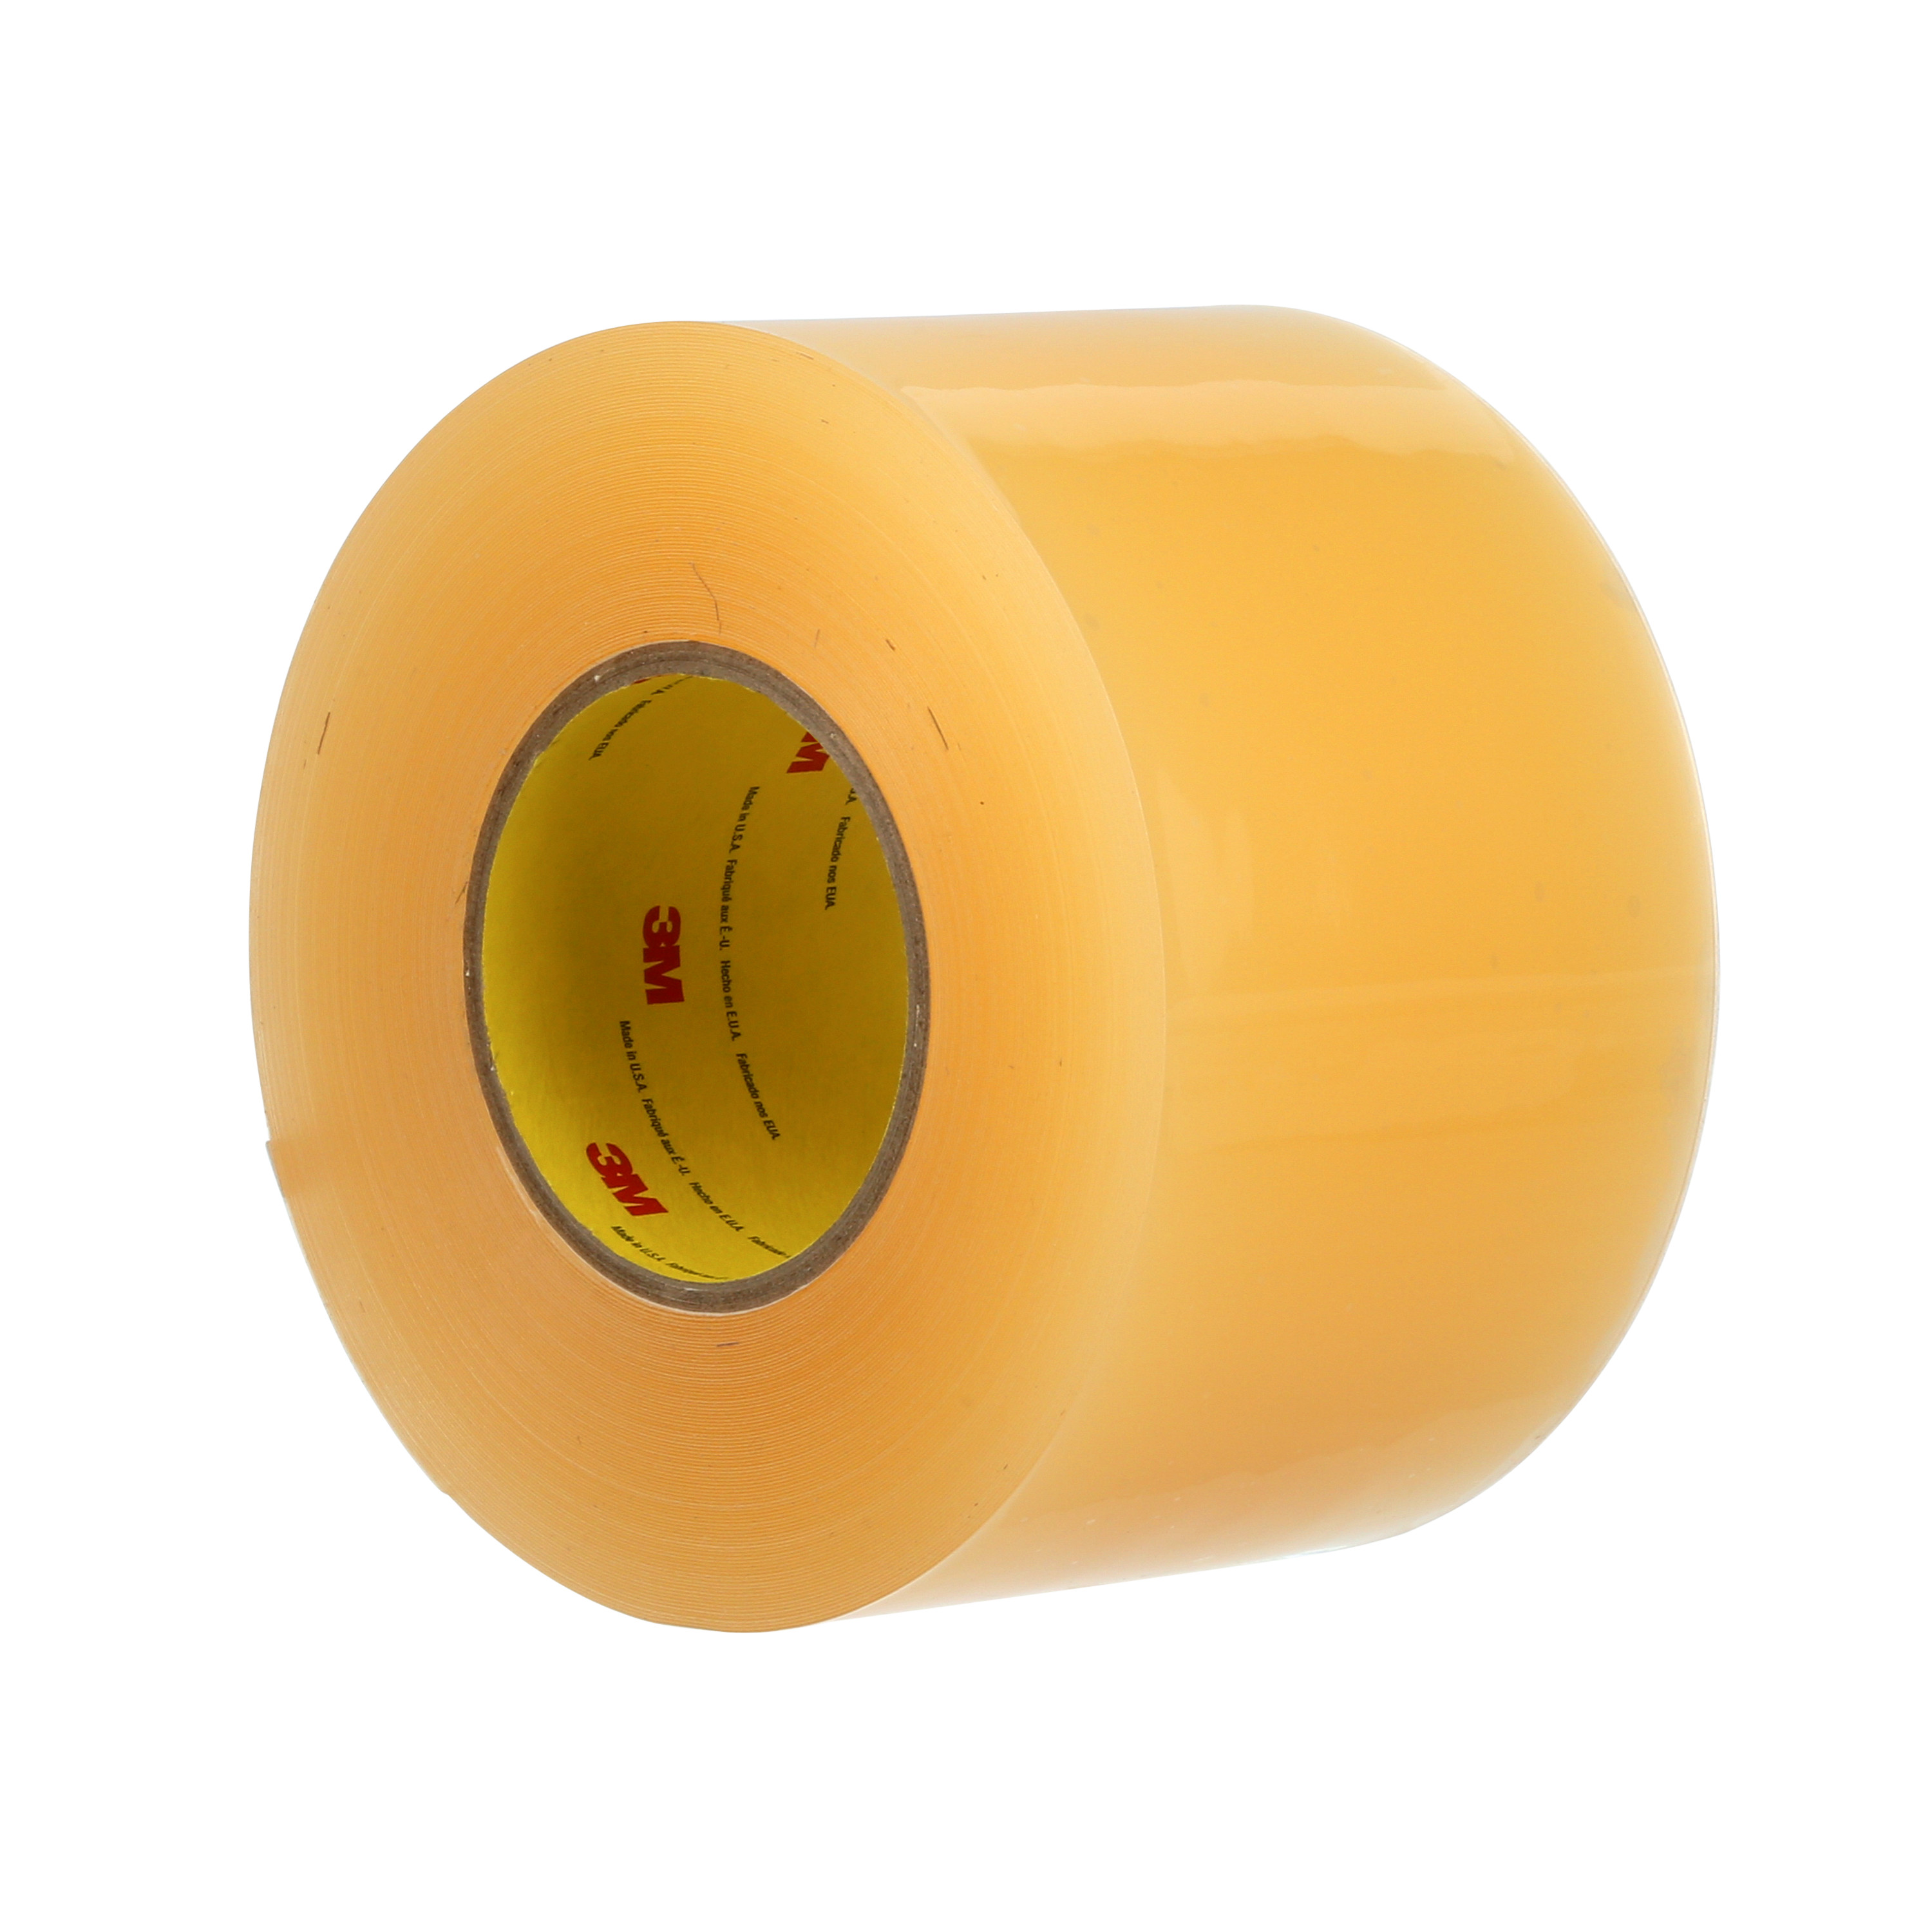 3M™ Polyurethane Protective Tape 8561, Transparent, 4 in x 3 yd, 1 Roll/Case, Sample